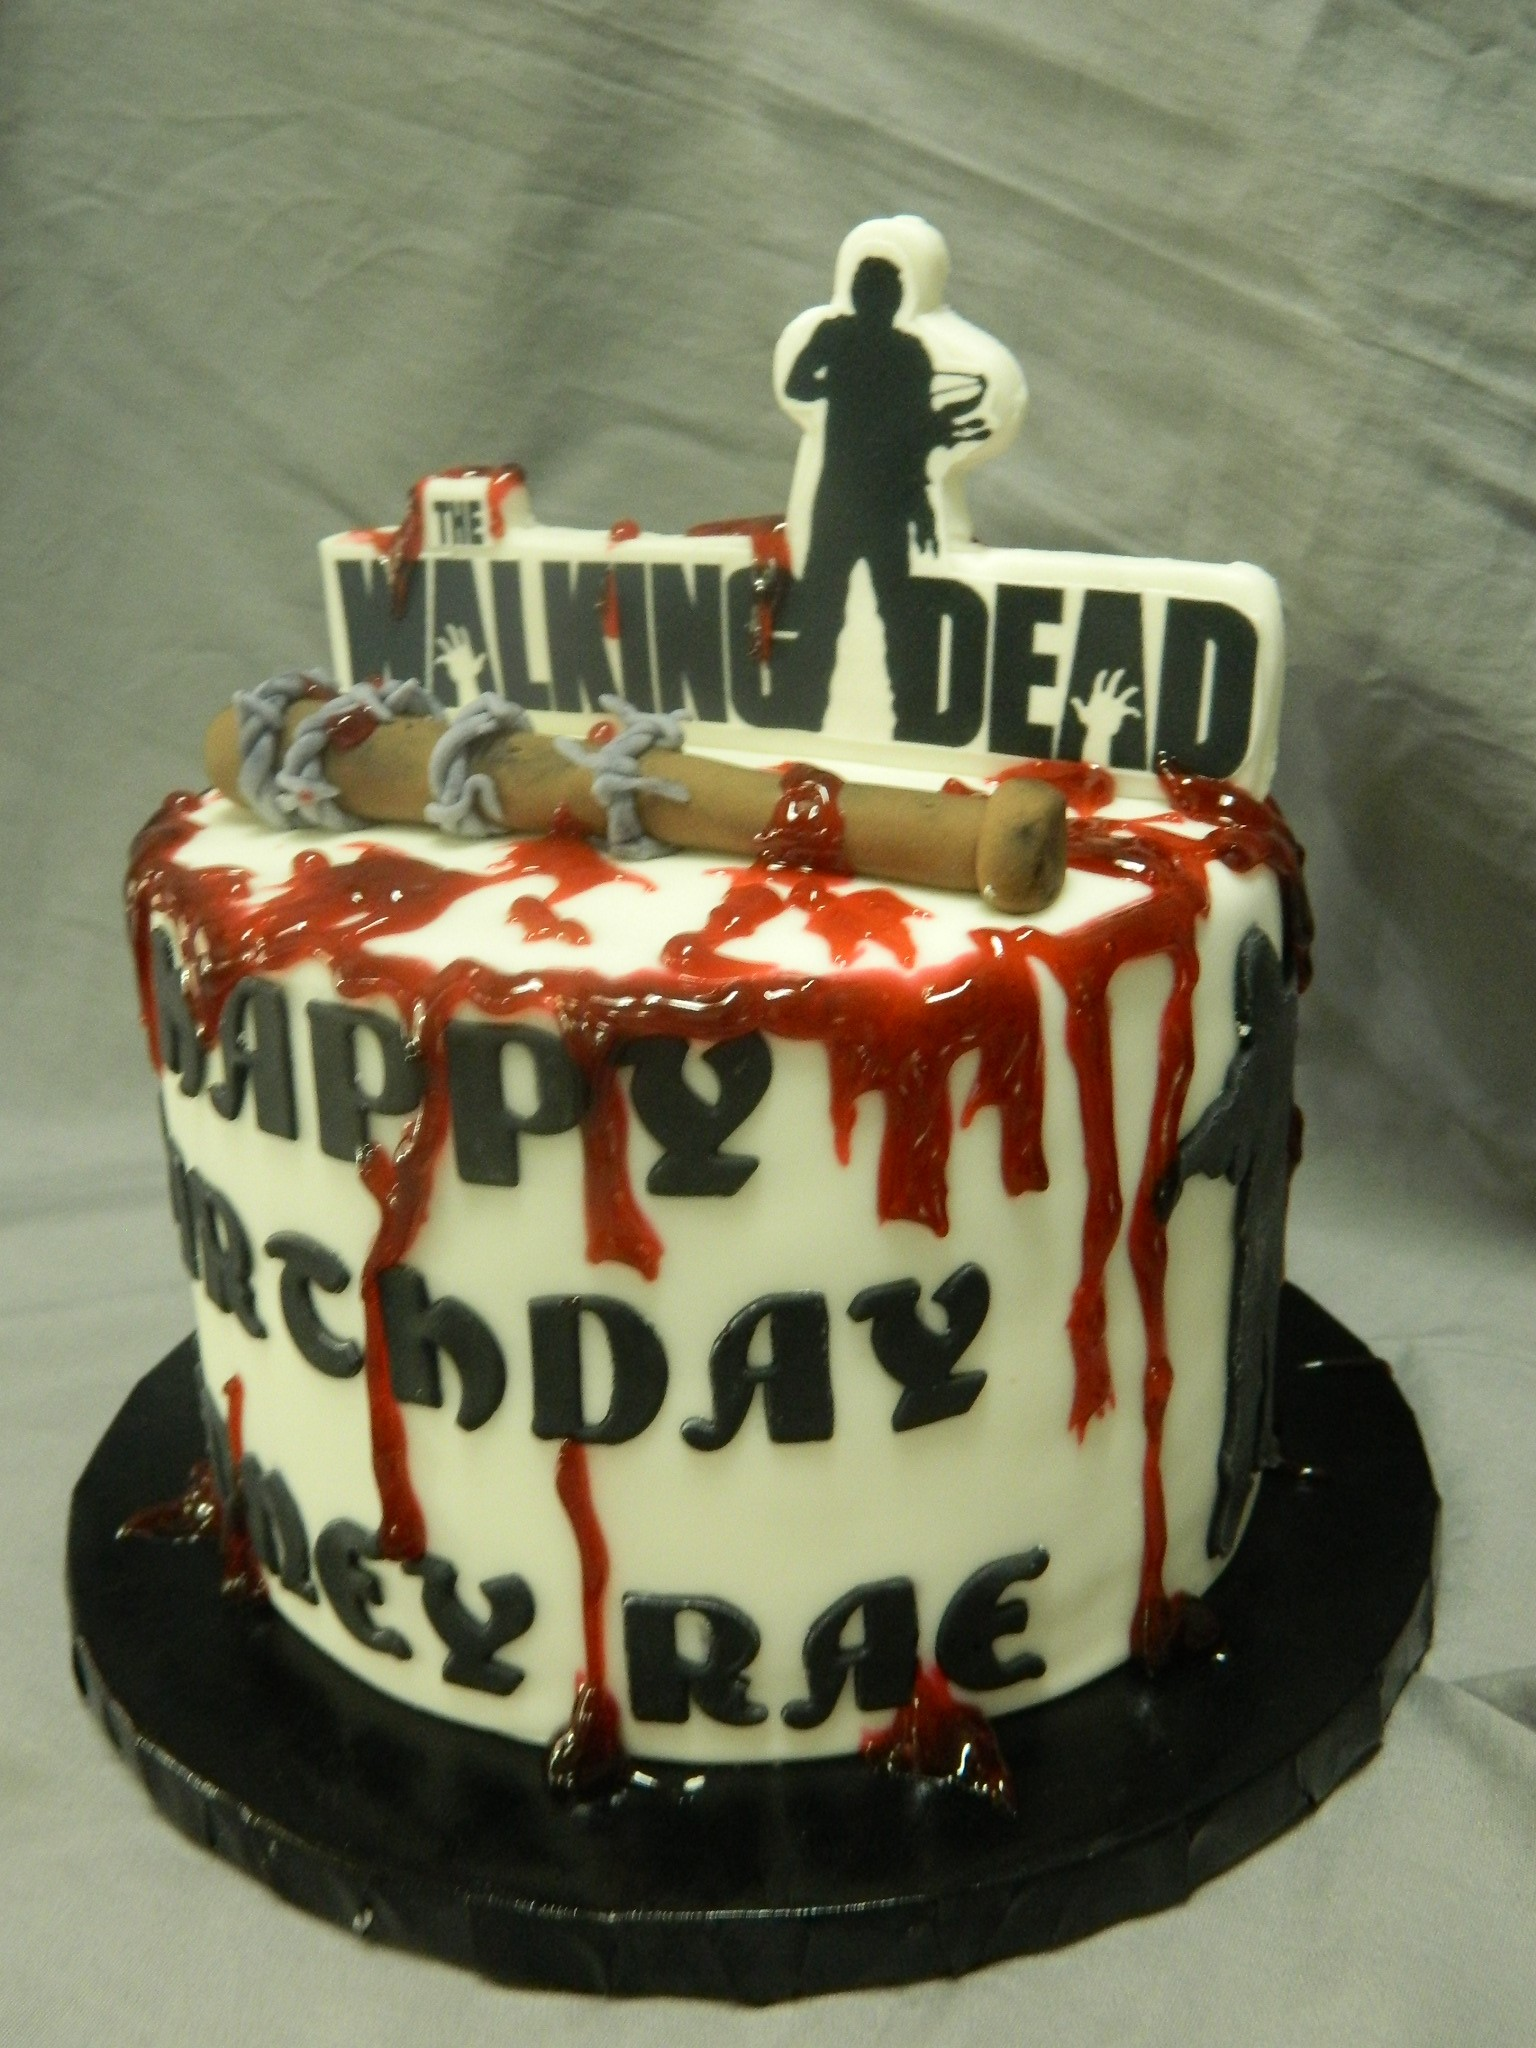 Walking Dead themed custom cake